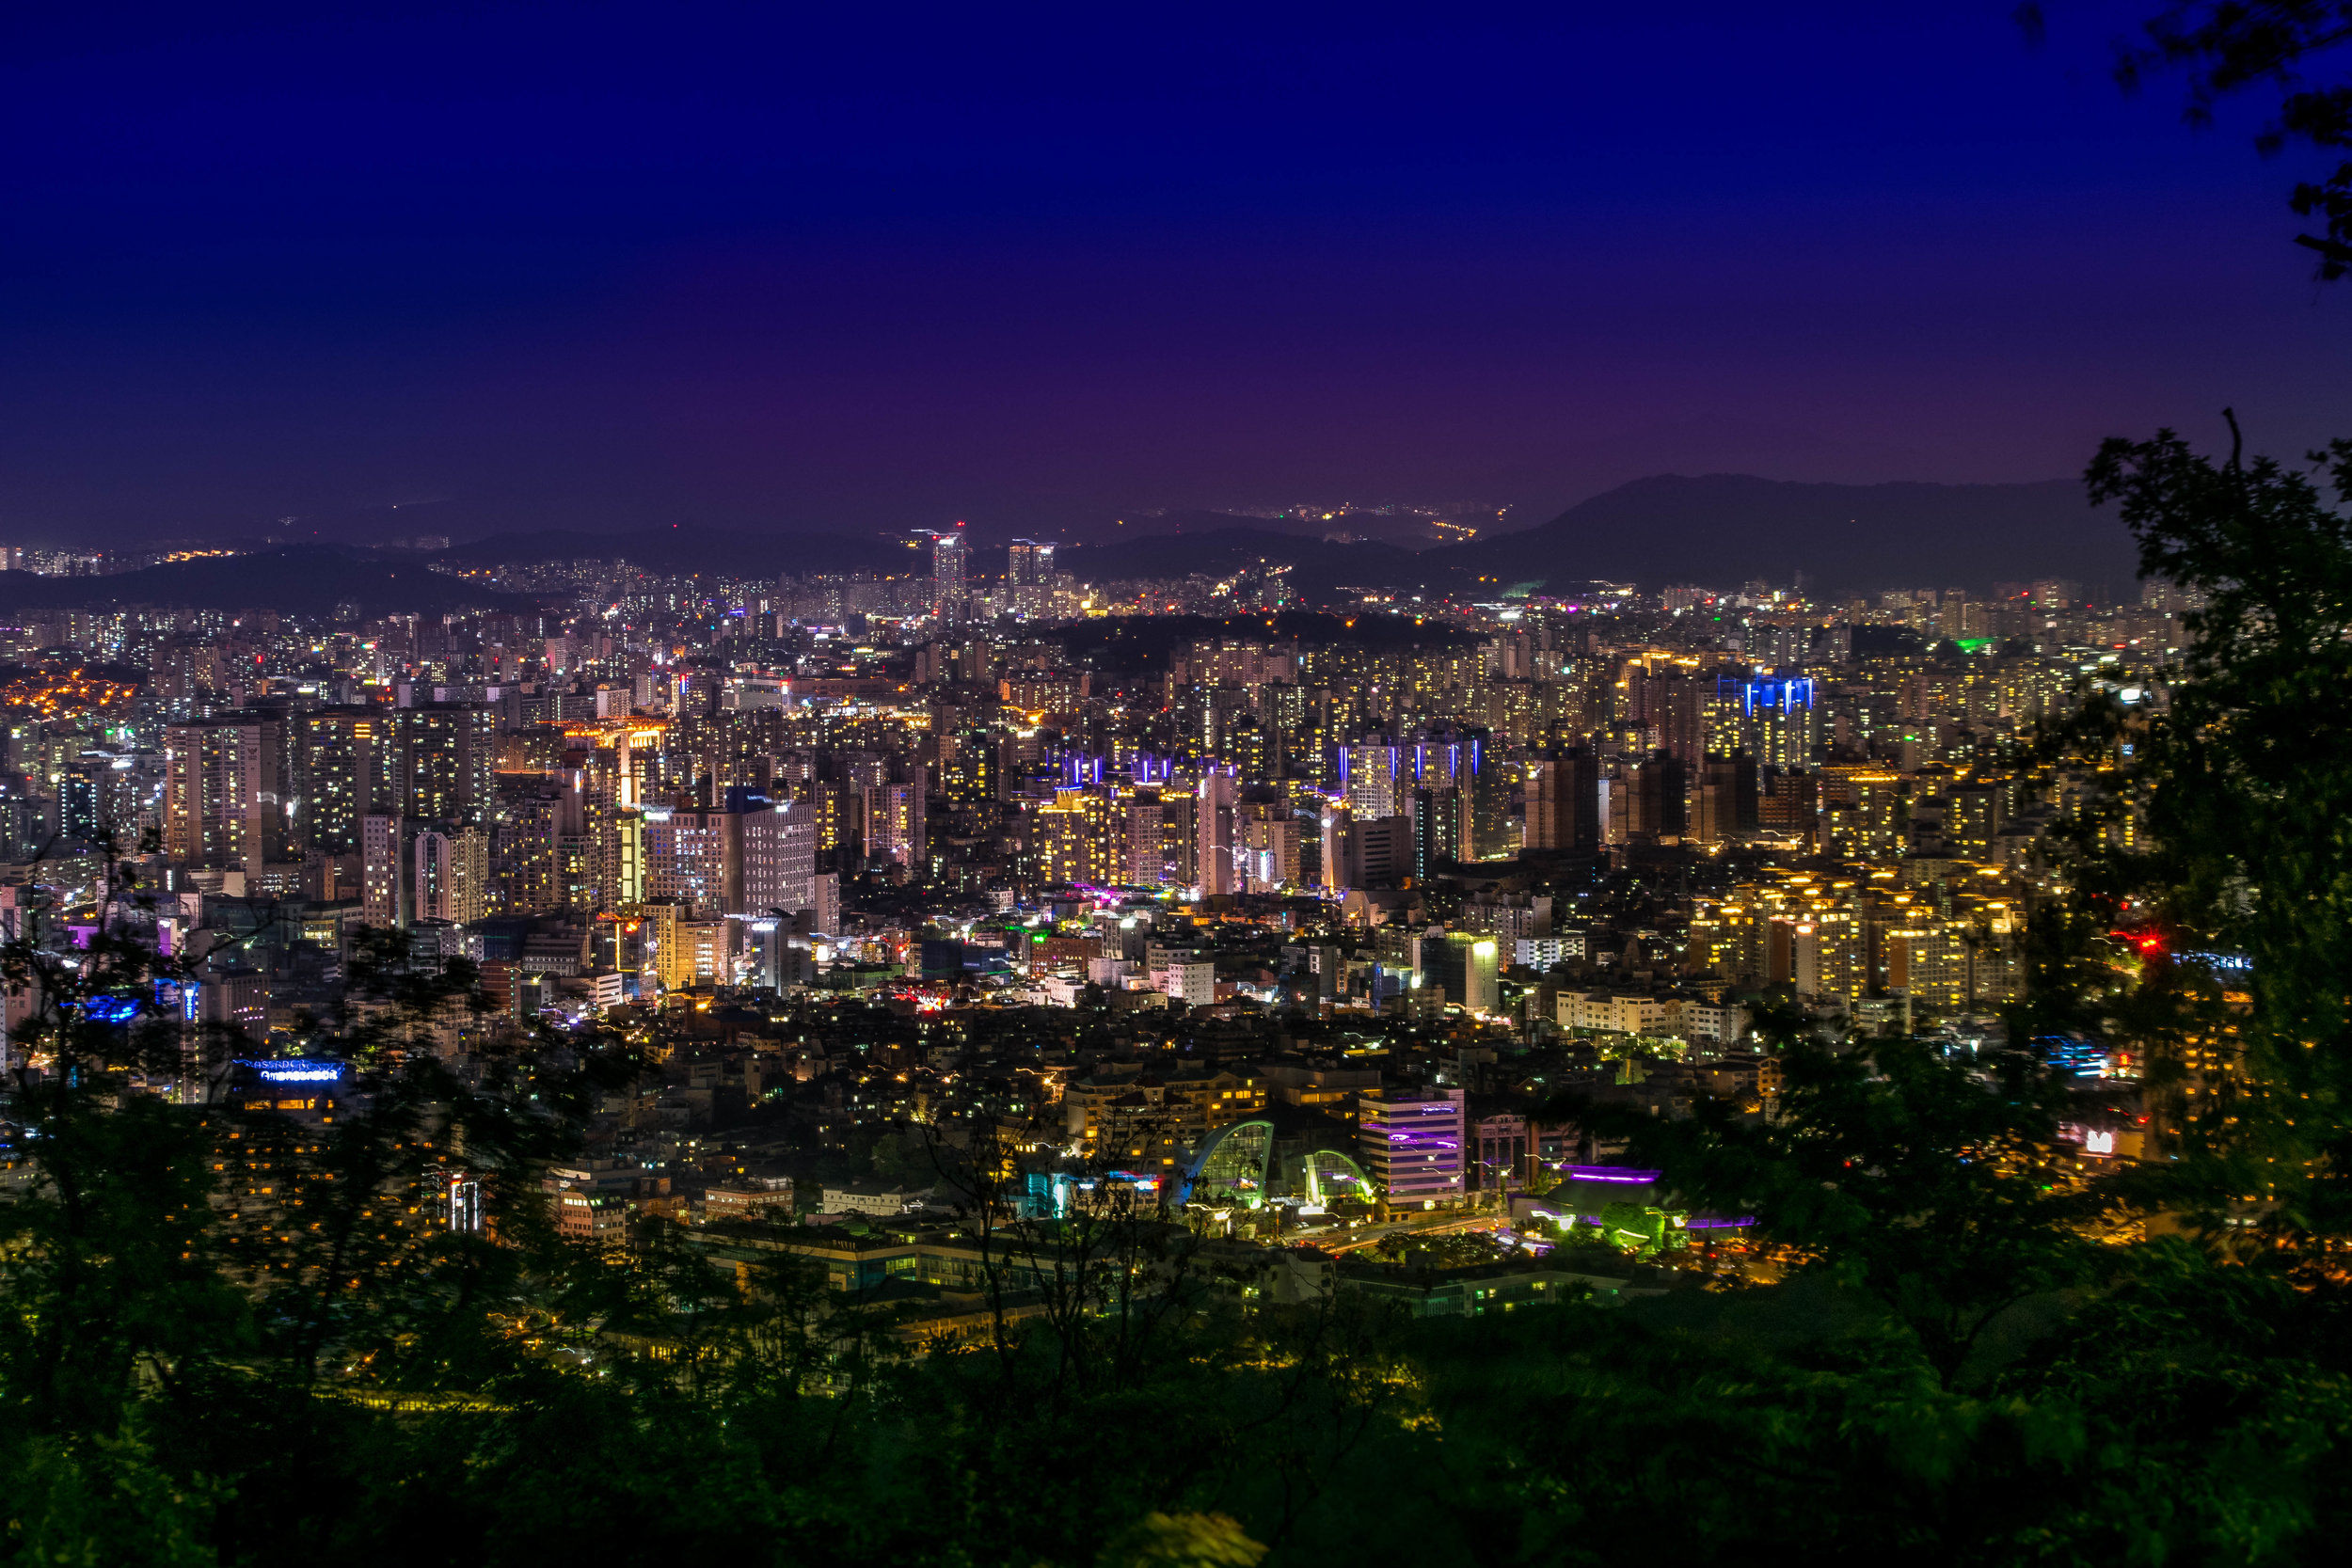 20180721-_DSC0061_namsan-night.jpg